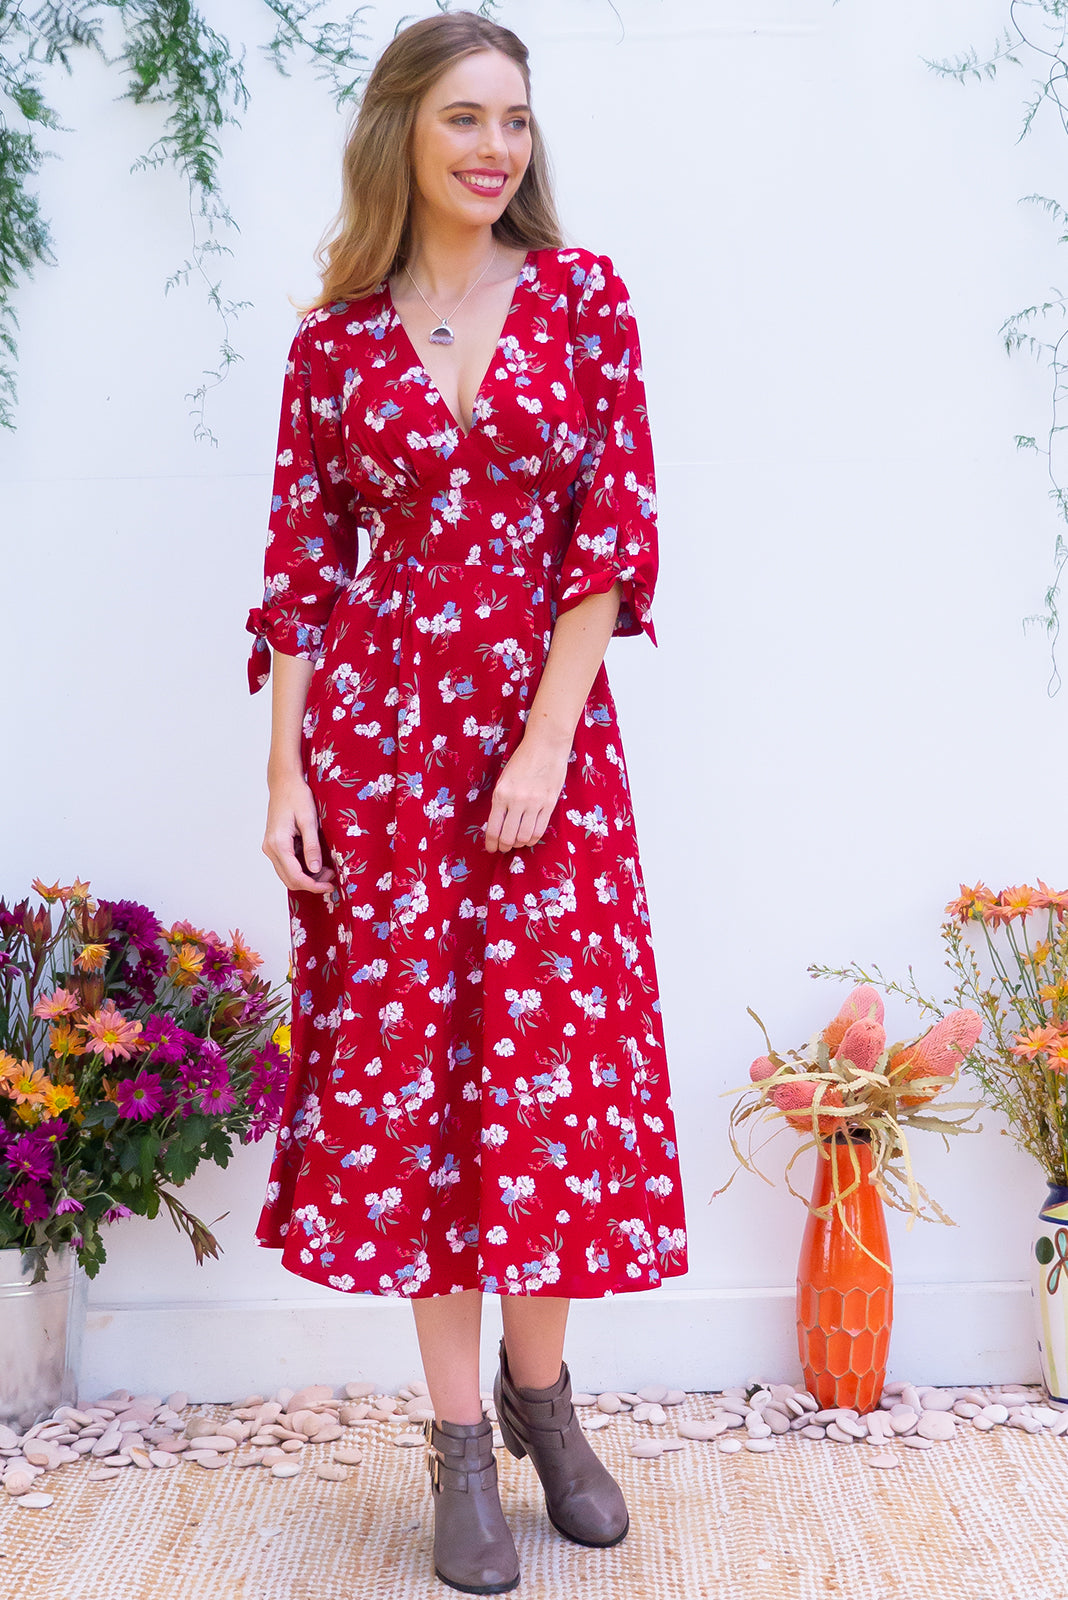 Henrietta Sangria Red Midi dress features a vintage inspired fitted basque waist and elasticated waist with a midi sleeve and deep v neck the fabric is a soft woven rayon in a strong bright red bohemian ditzy floral print